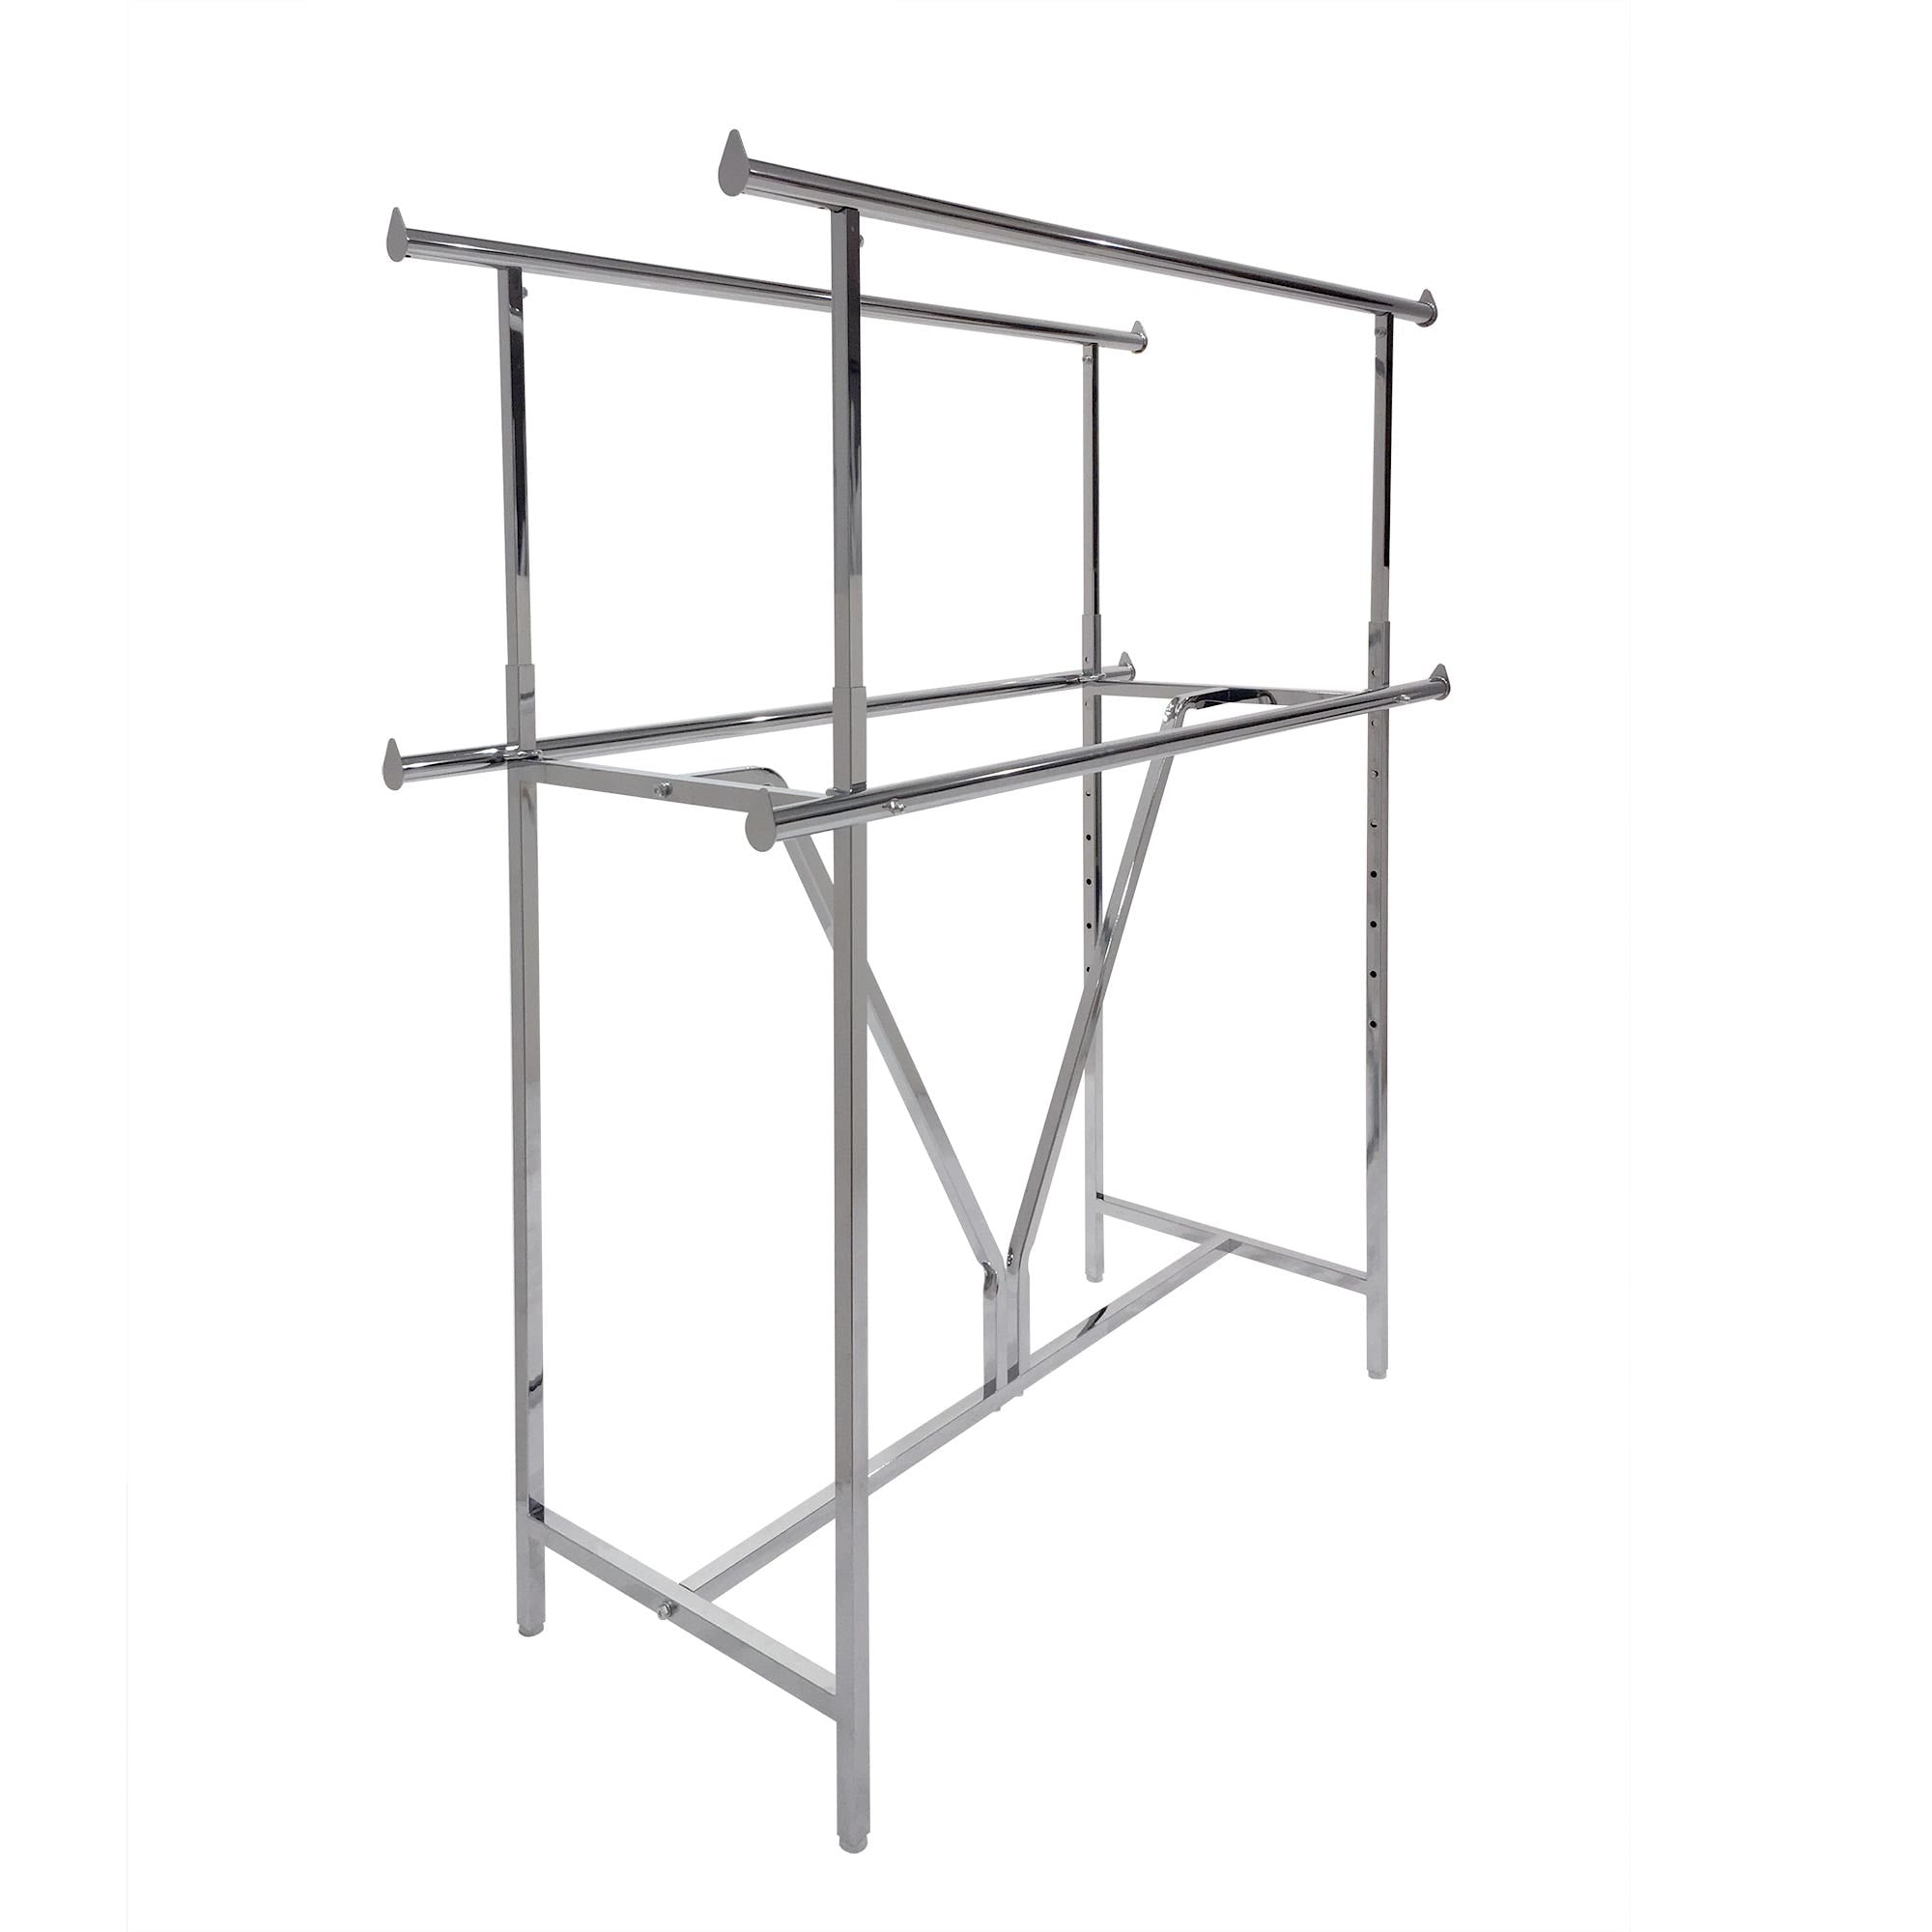 Econoco Clamp-On Hangrail for Double Bar Racks K40 and K41. Priced per Rail (2 Pcs. Per Carton)